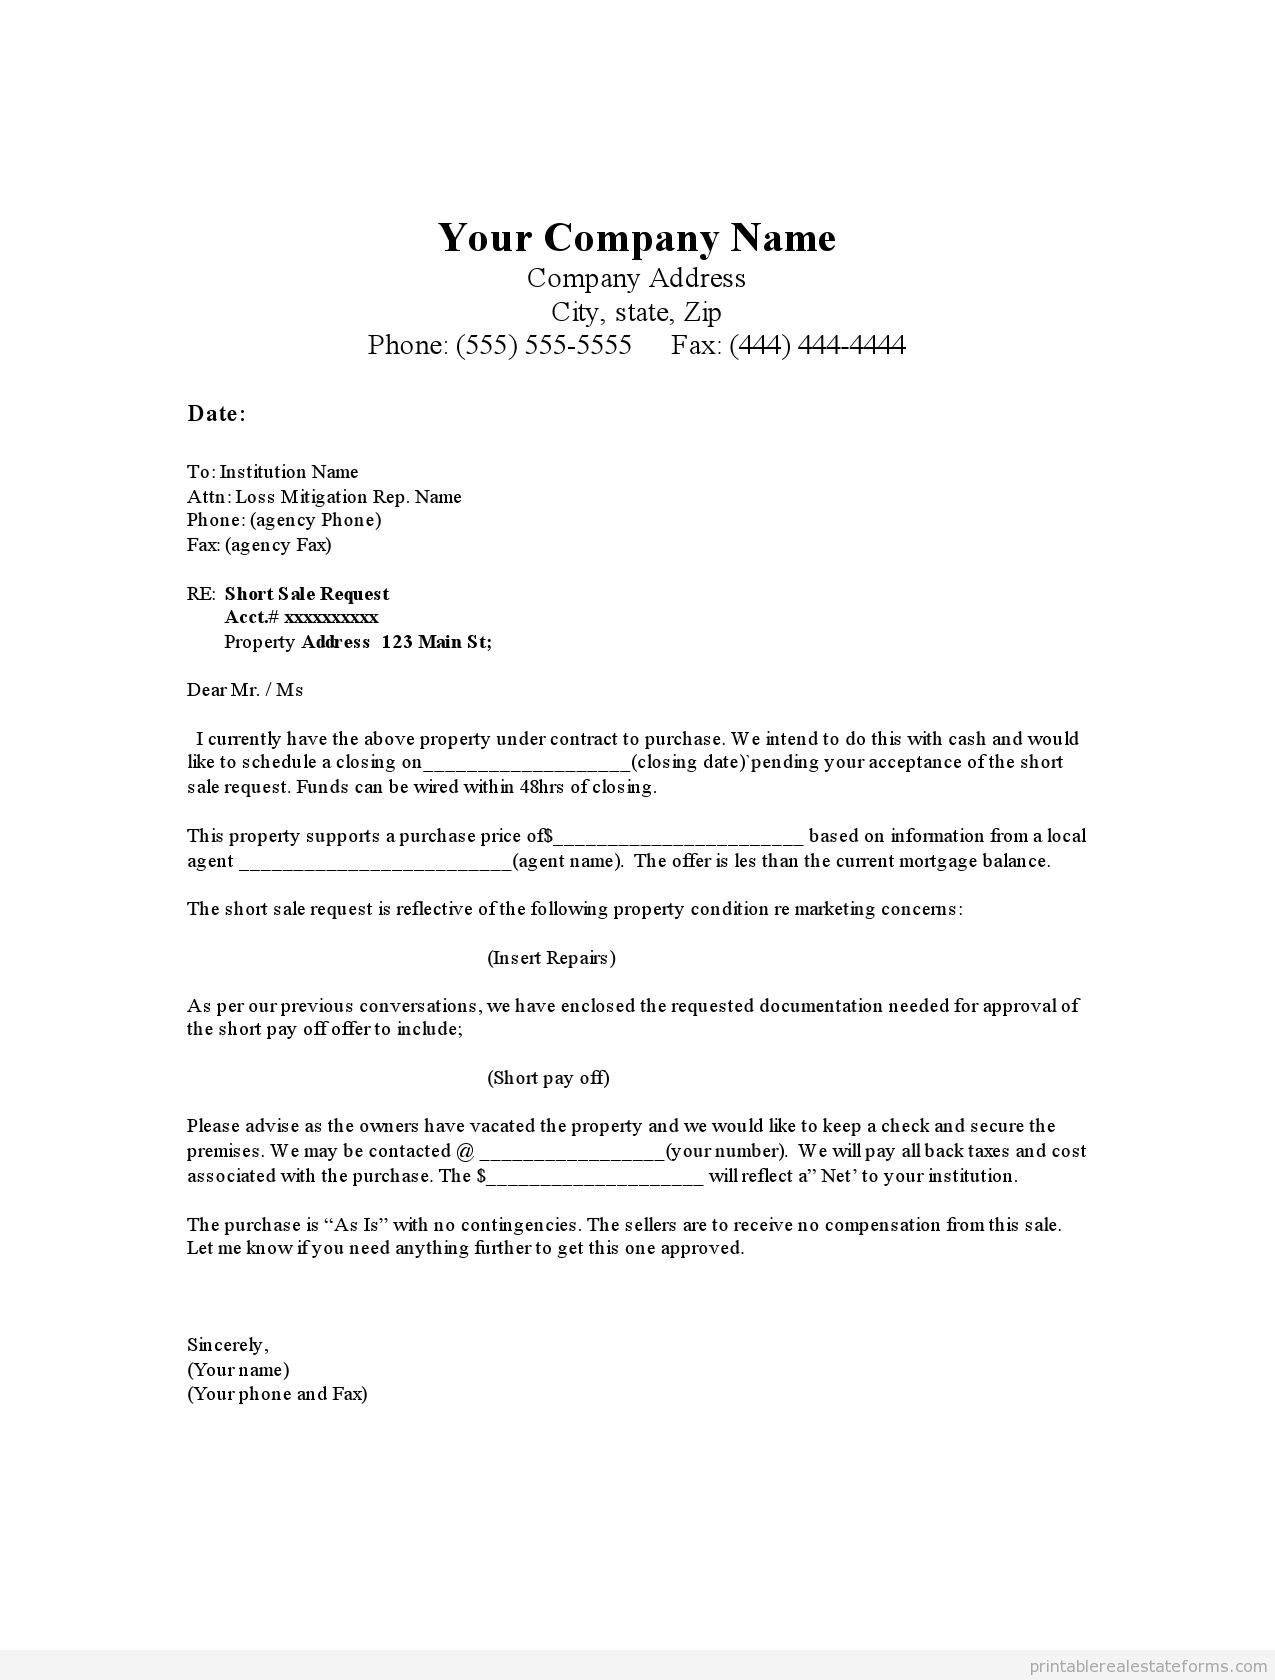 home purchase offer letter template example-Home Fer Letter Template Home fer Letter Sample Ideas 14-r